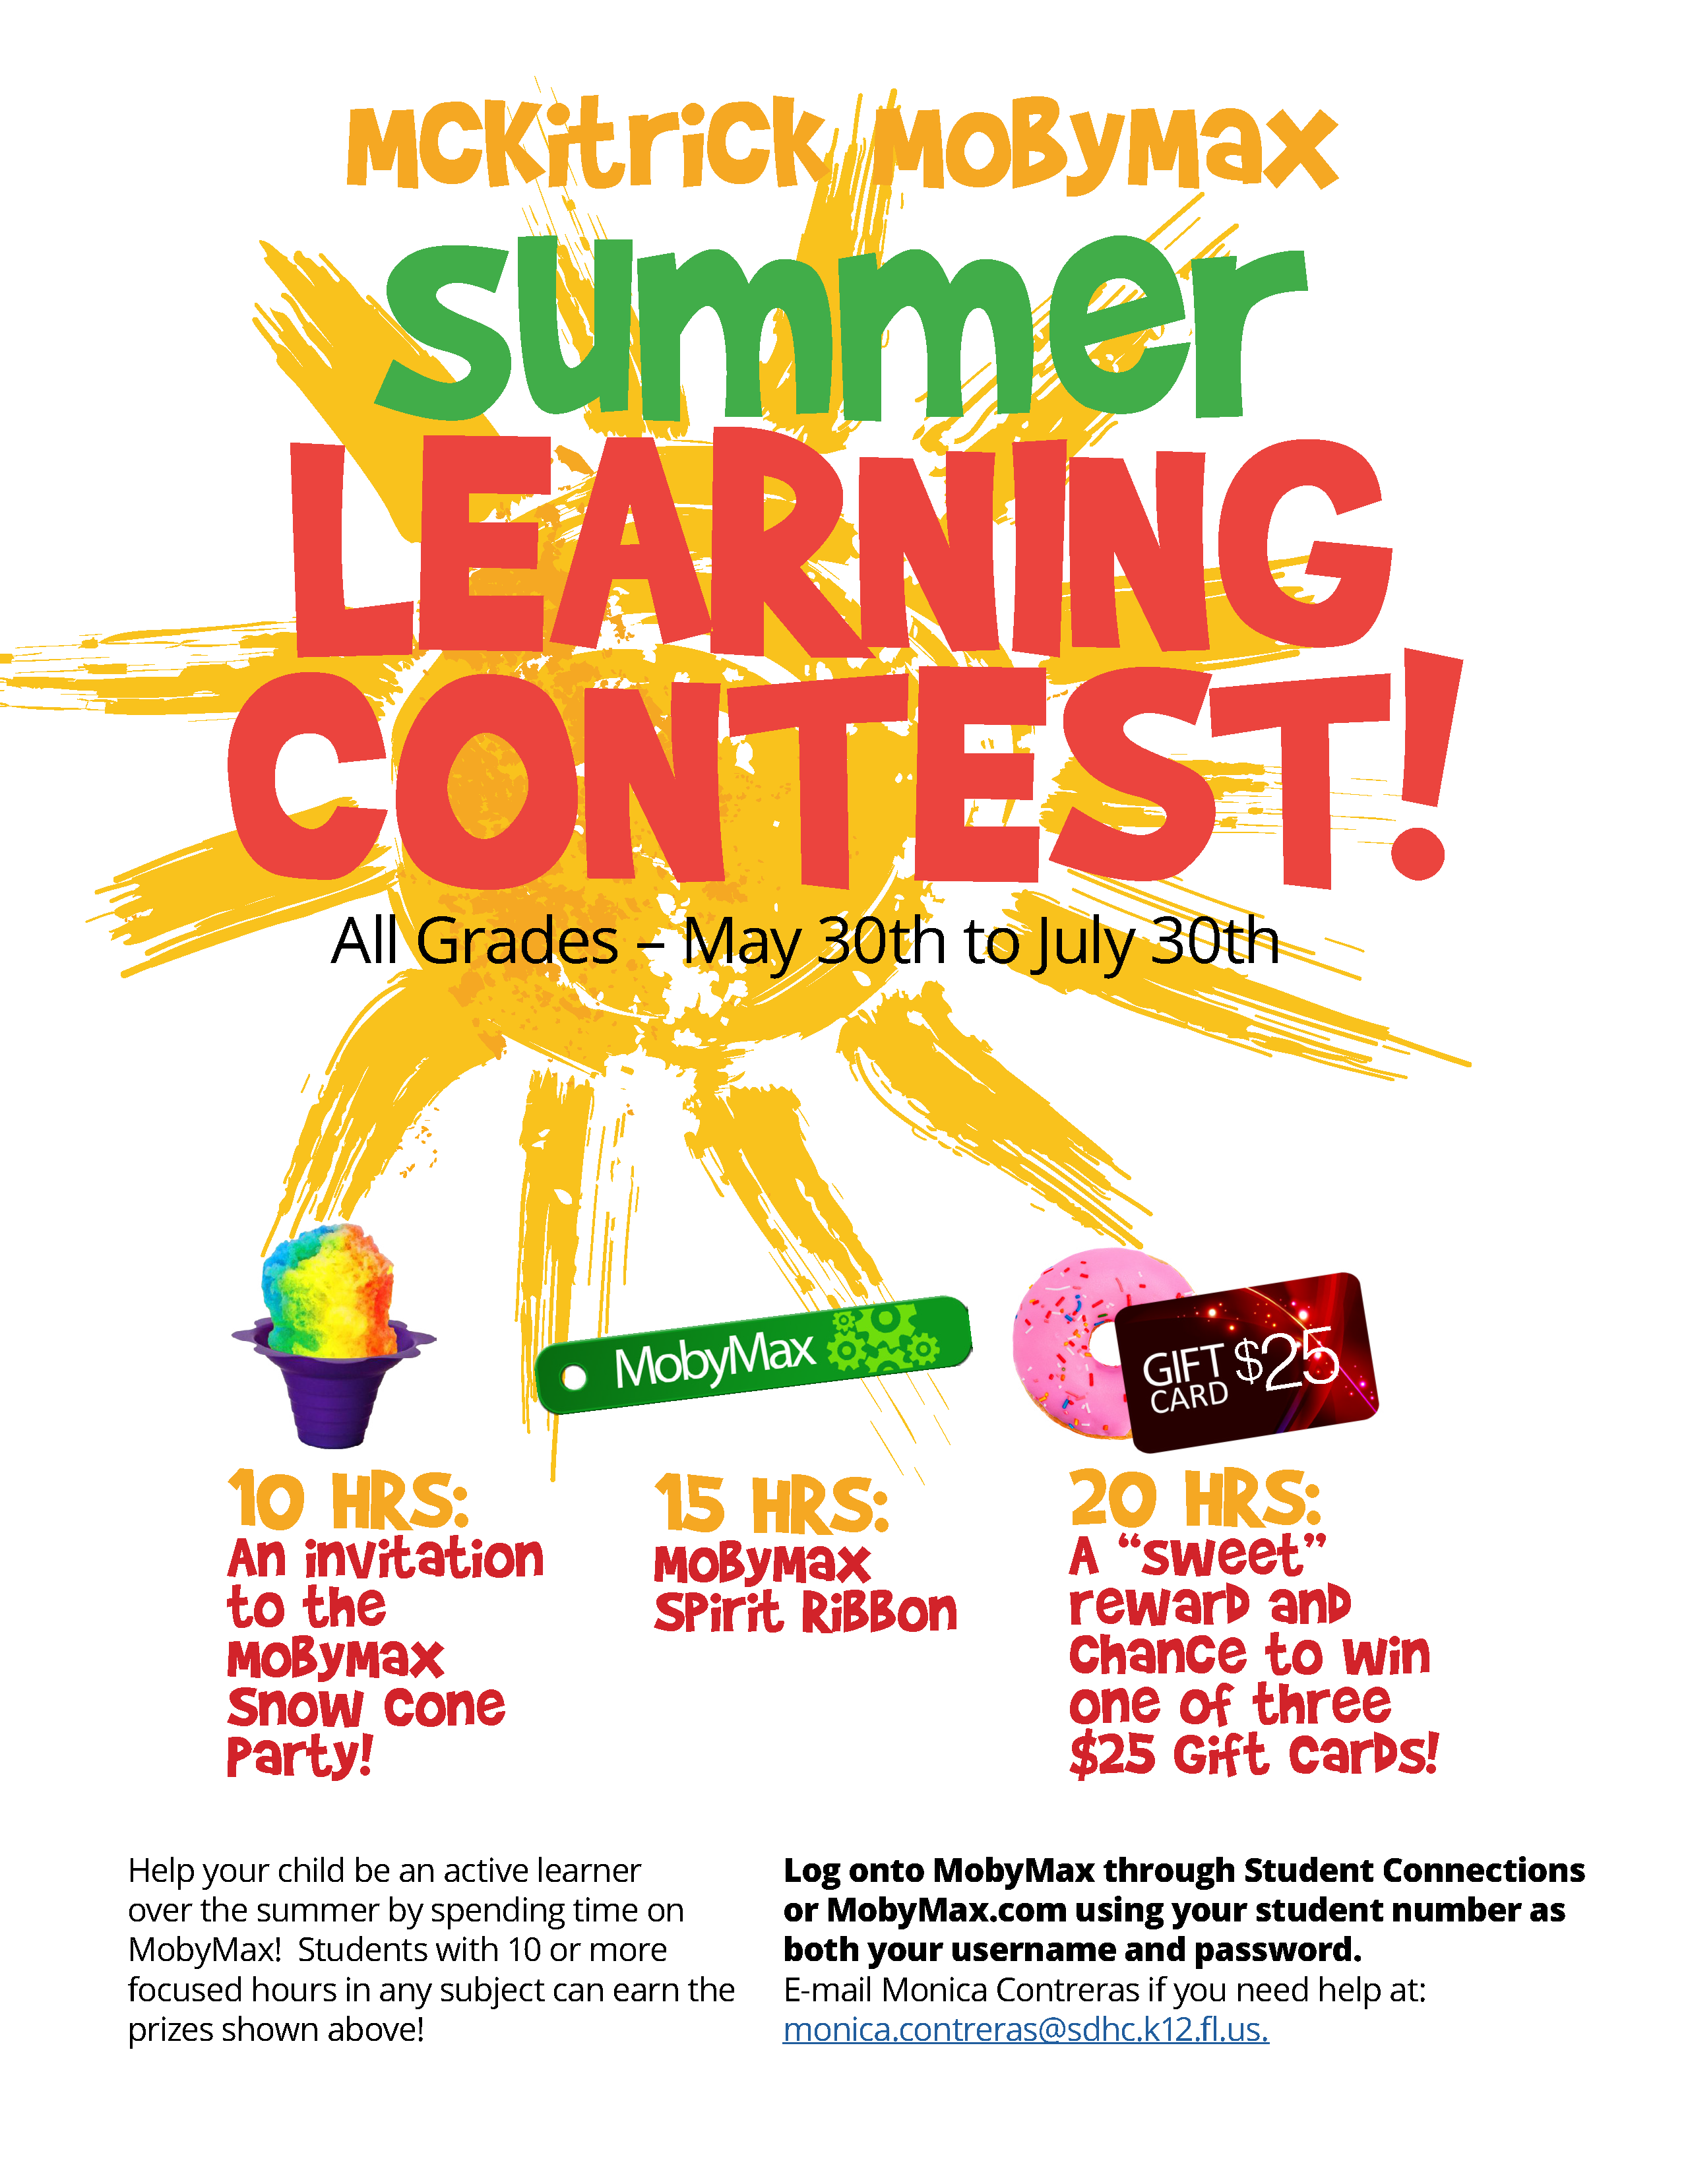 00127 - Summer Learaning Contest-2